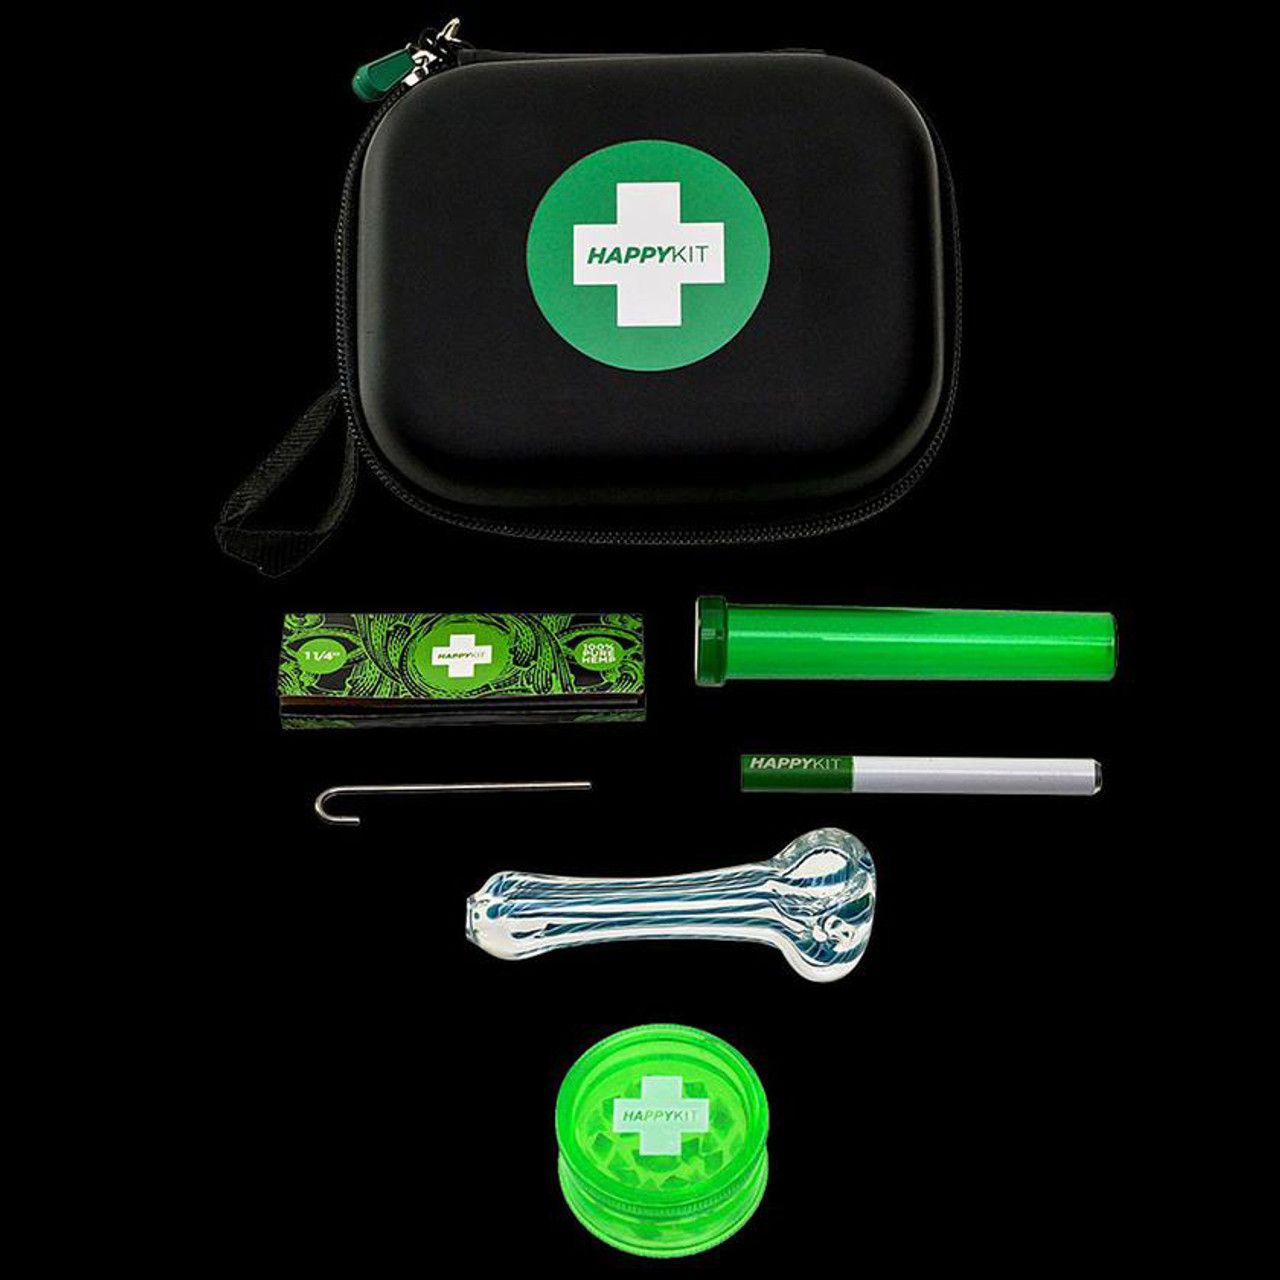 The Happy Kit Deluxe - Smoking Accessories and Case